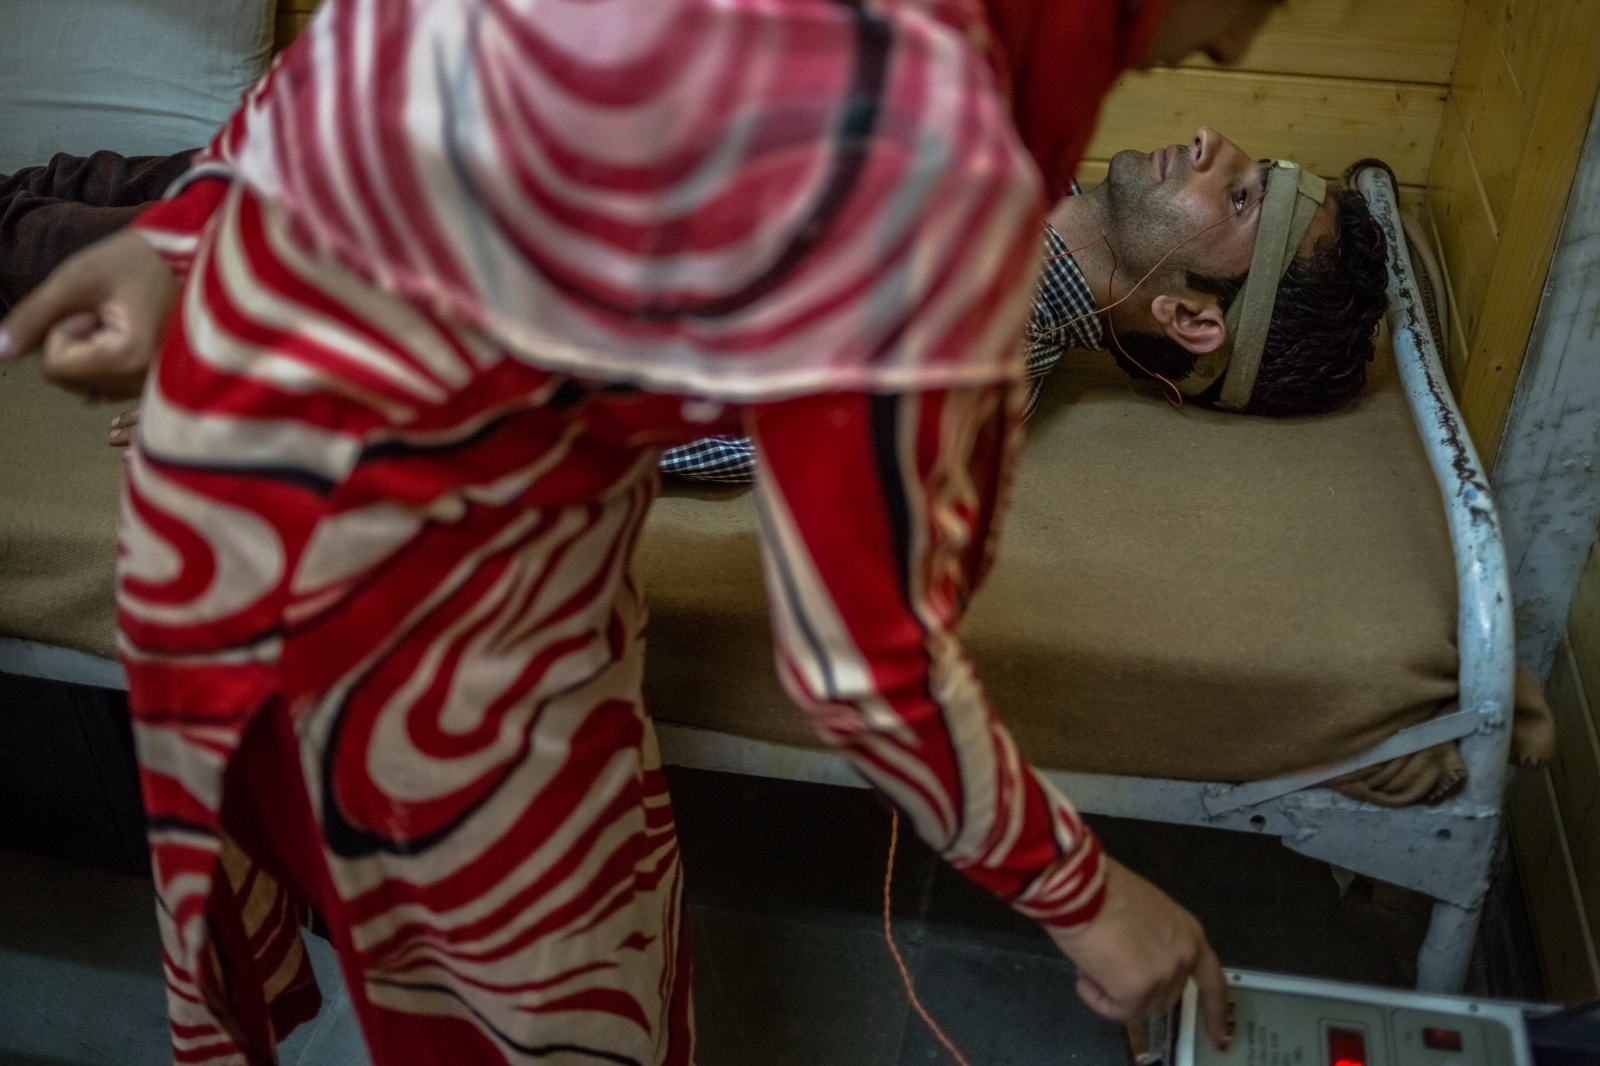 A Kashmiri patient who has been suffering from symptoms of depression and anxiety undergoes a form of electro-convulsive therapy by a member of medical staff at the Psychiatric Diseases government hospital in Srinagar on September 14, 2015.